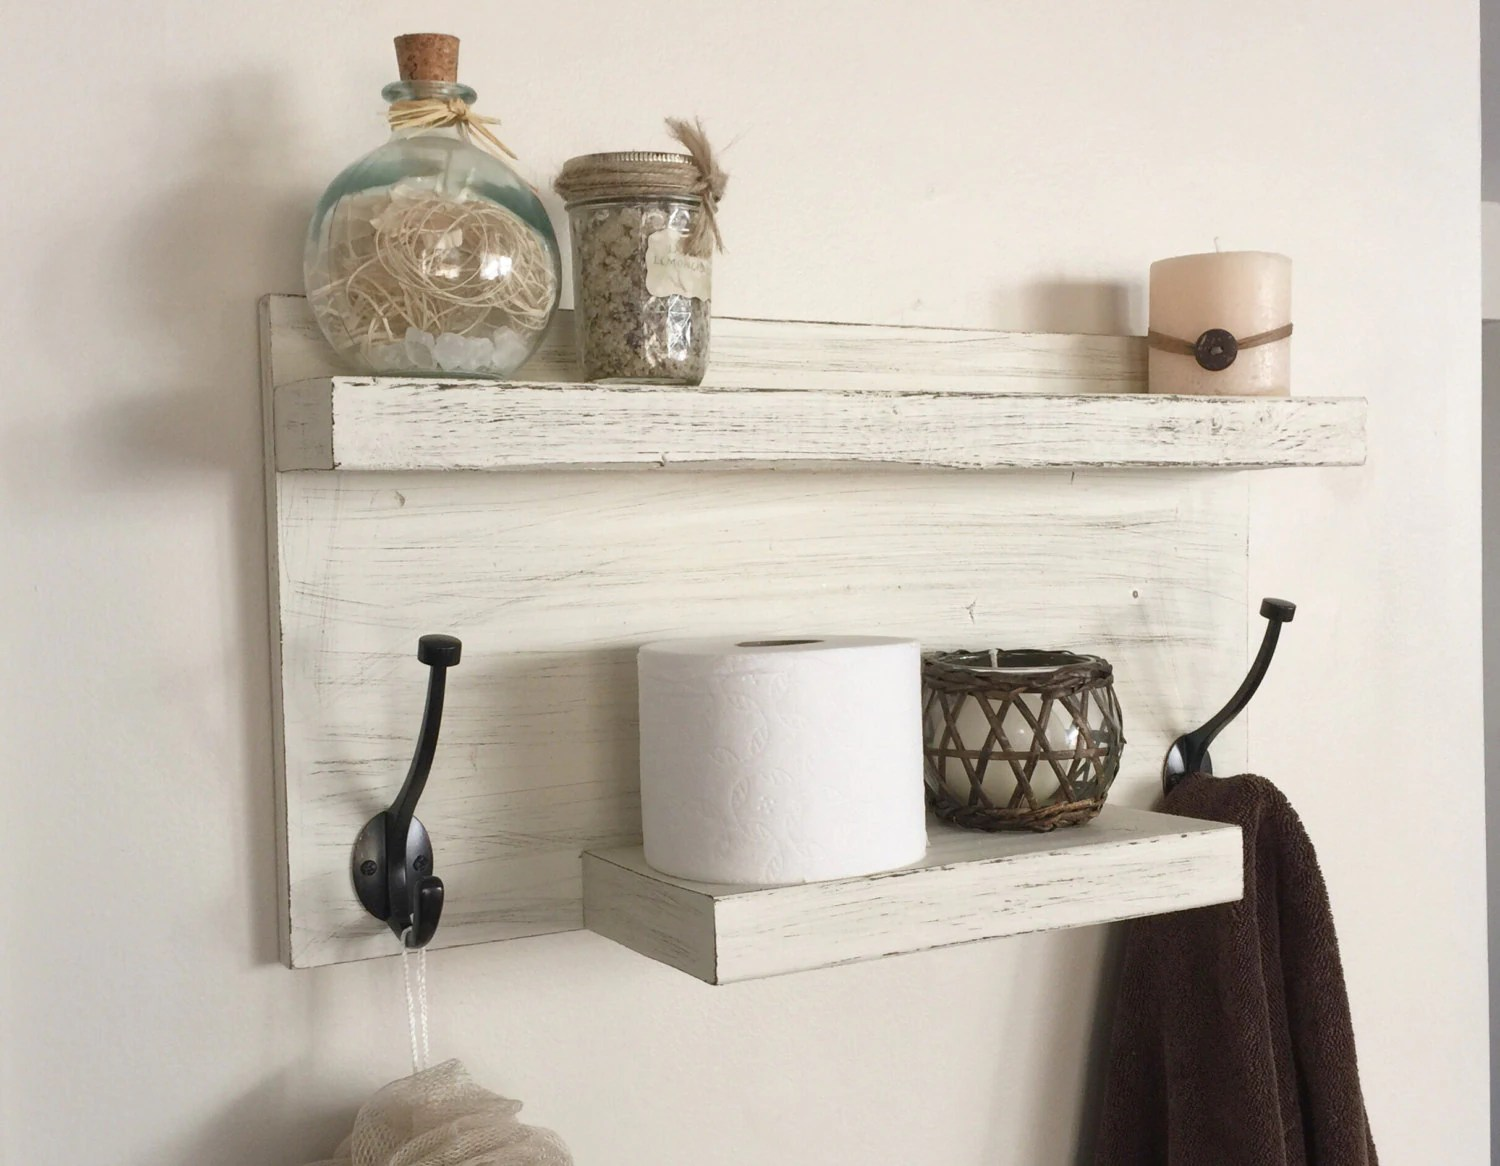 Farmhouse Hand Towel Holder Rustic Bathroom Towel Rack Rustic Shelf Farmhouse Decor